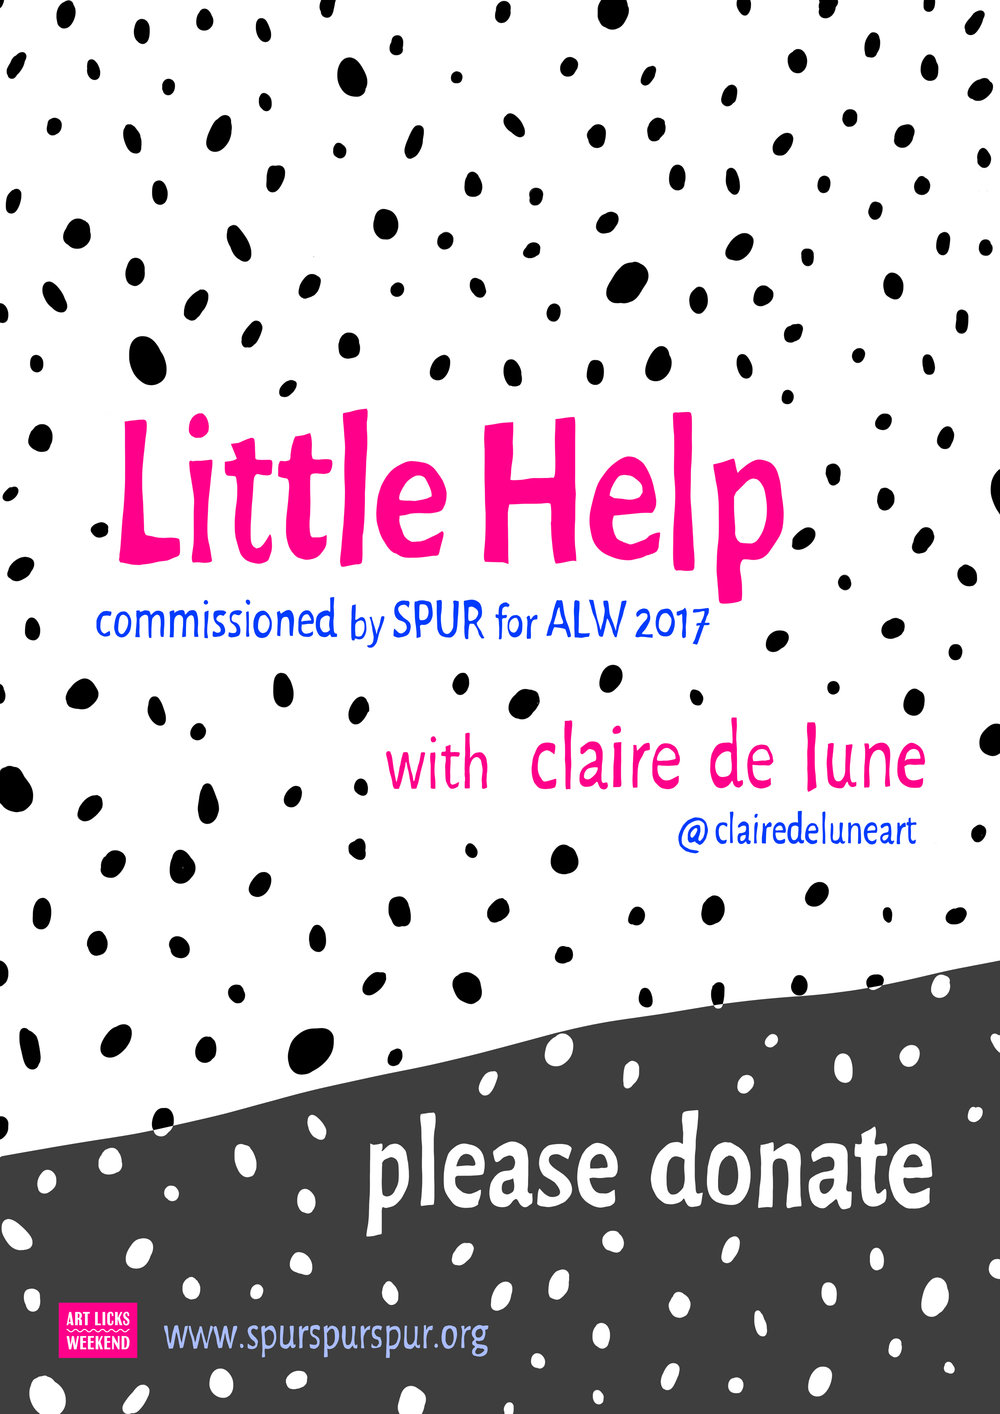 Little Help / SPUR art commission ceramic and fundraiser poster